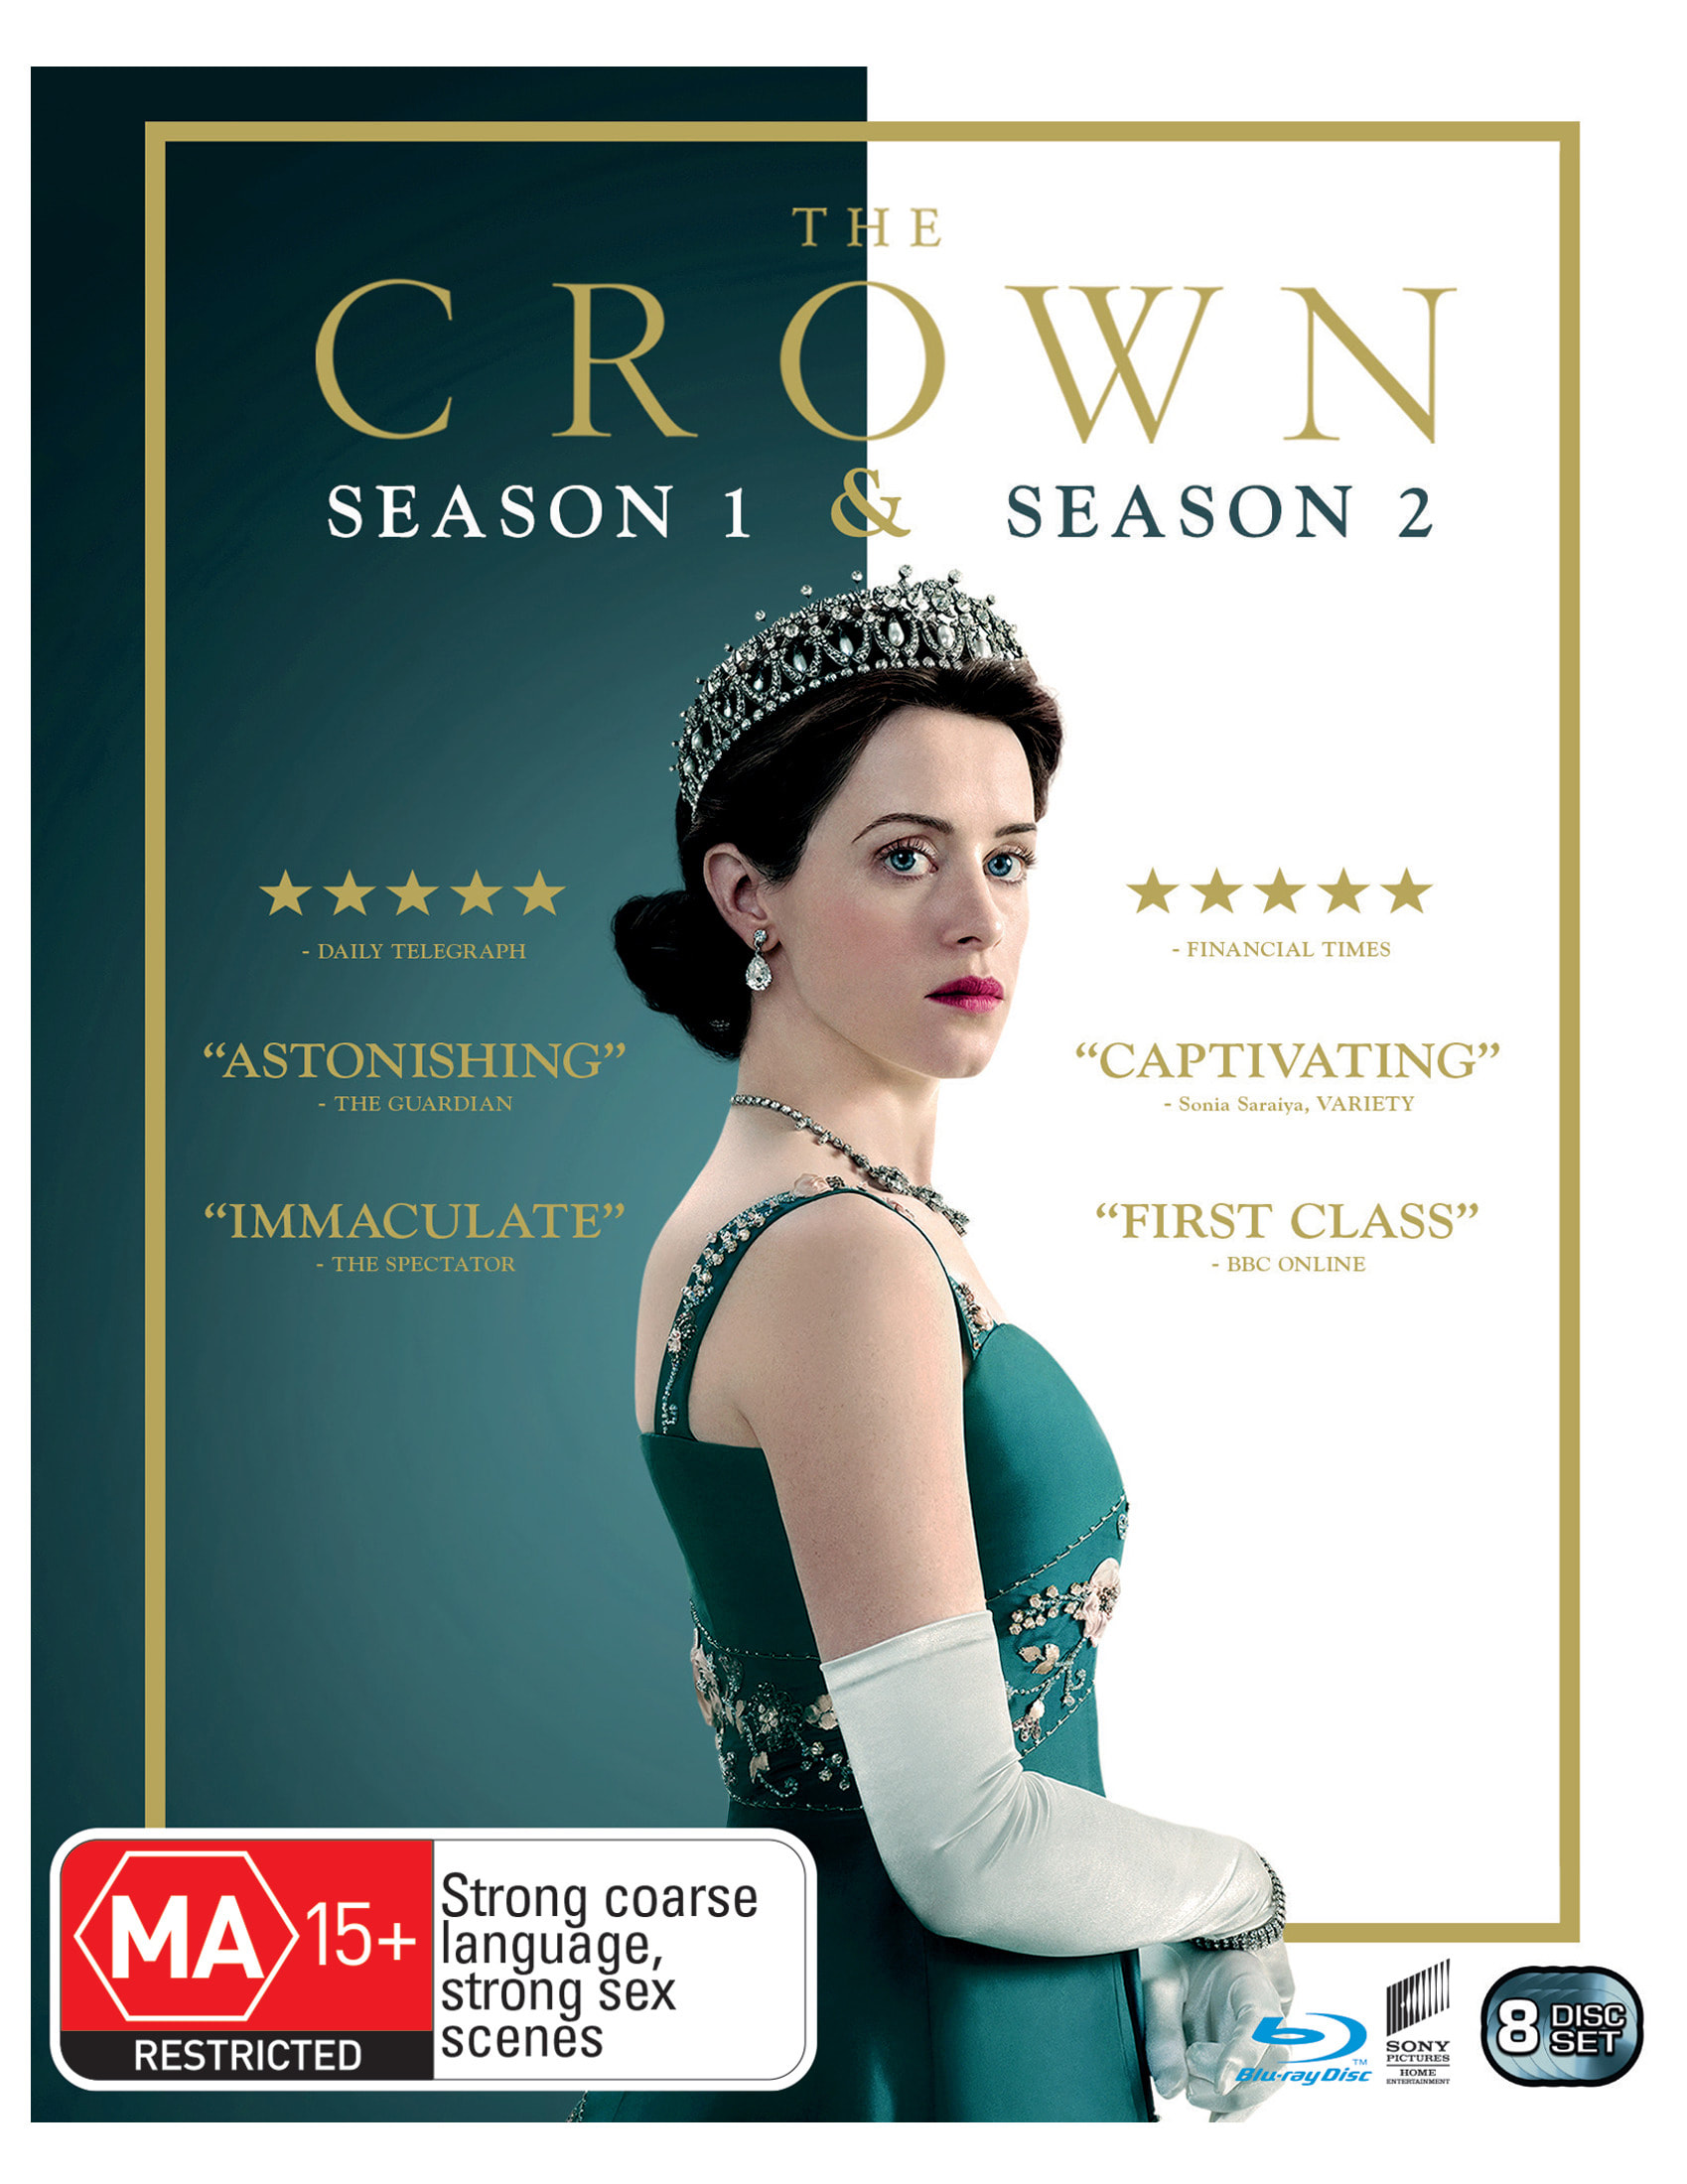 The Crown Season 1 & 2 Box Set [Blu-ray]